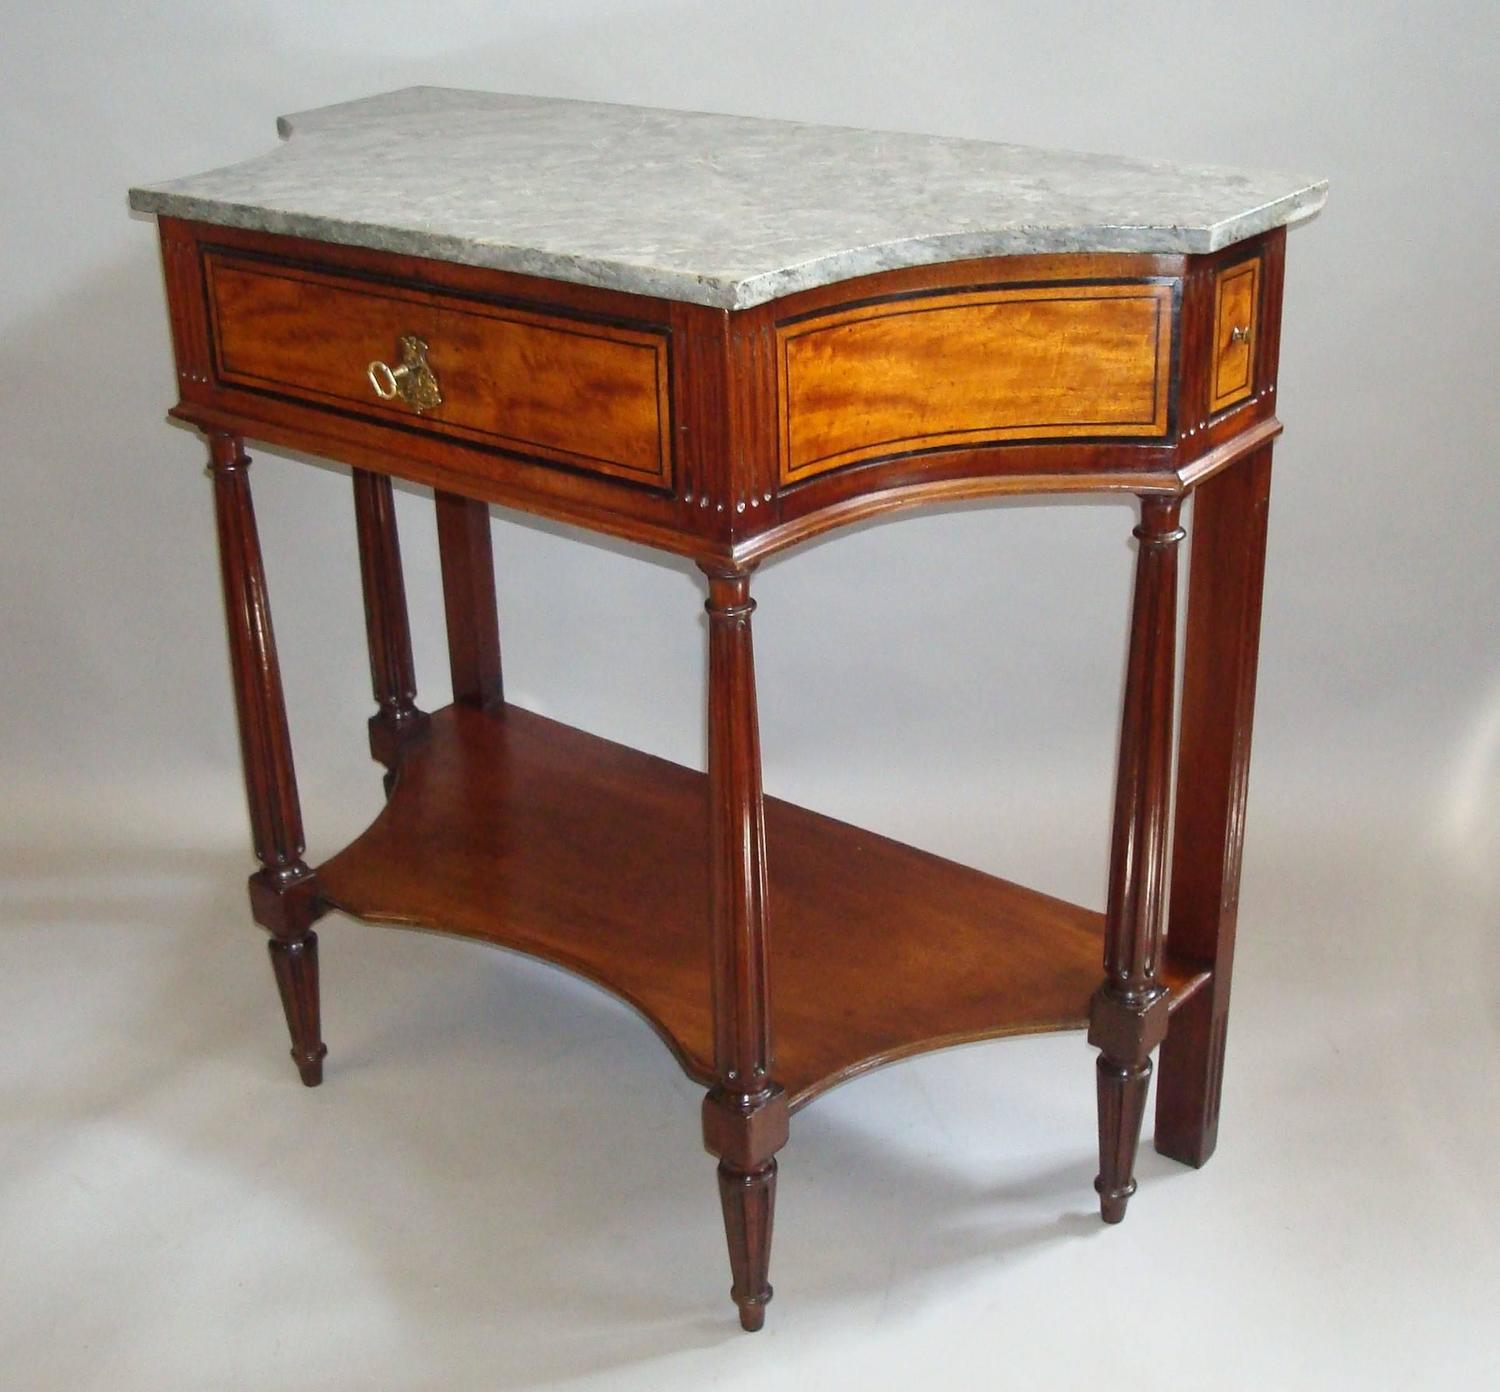 19th century french console table in mahogany and satinwood with